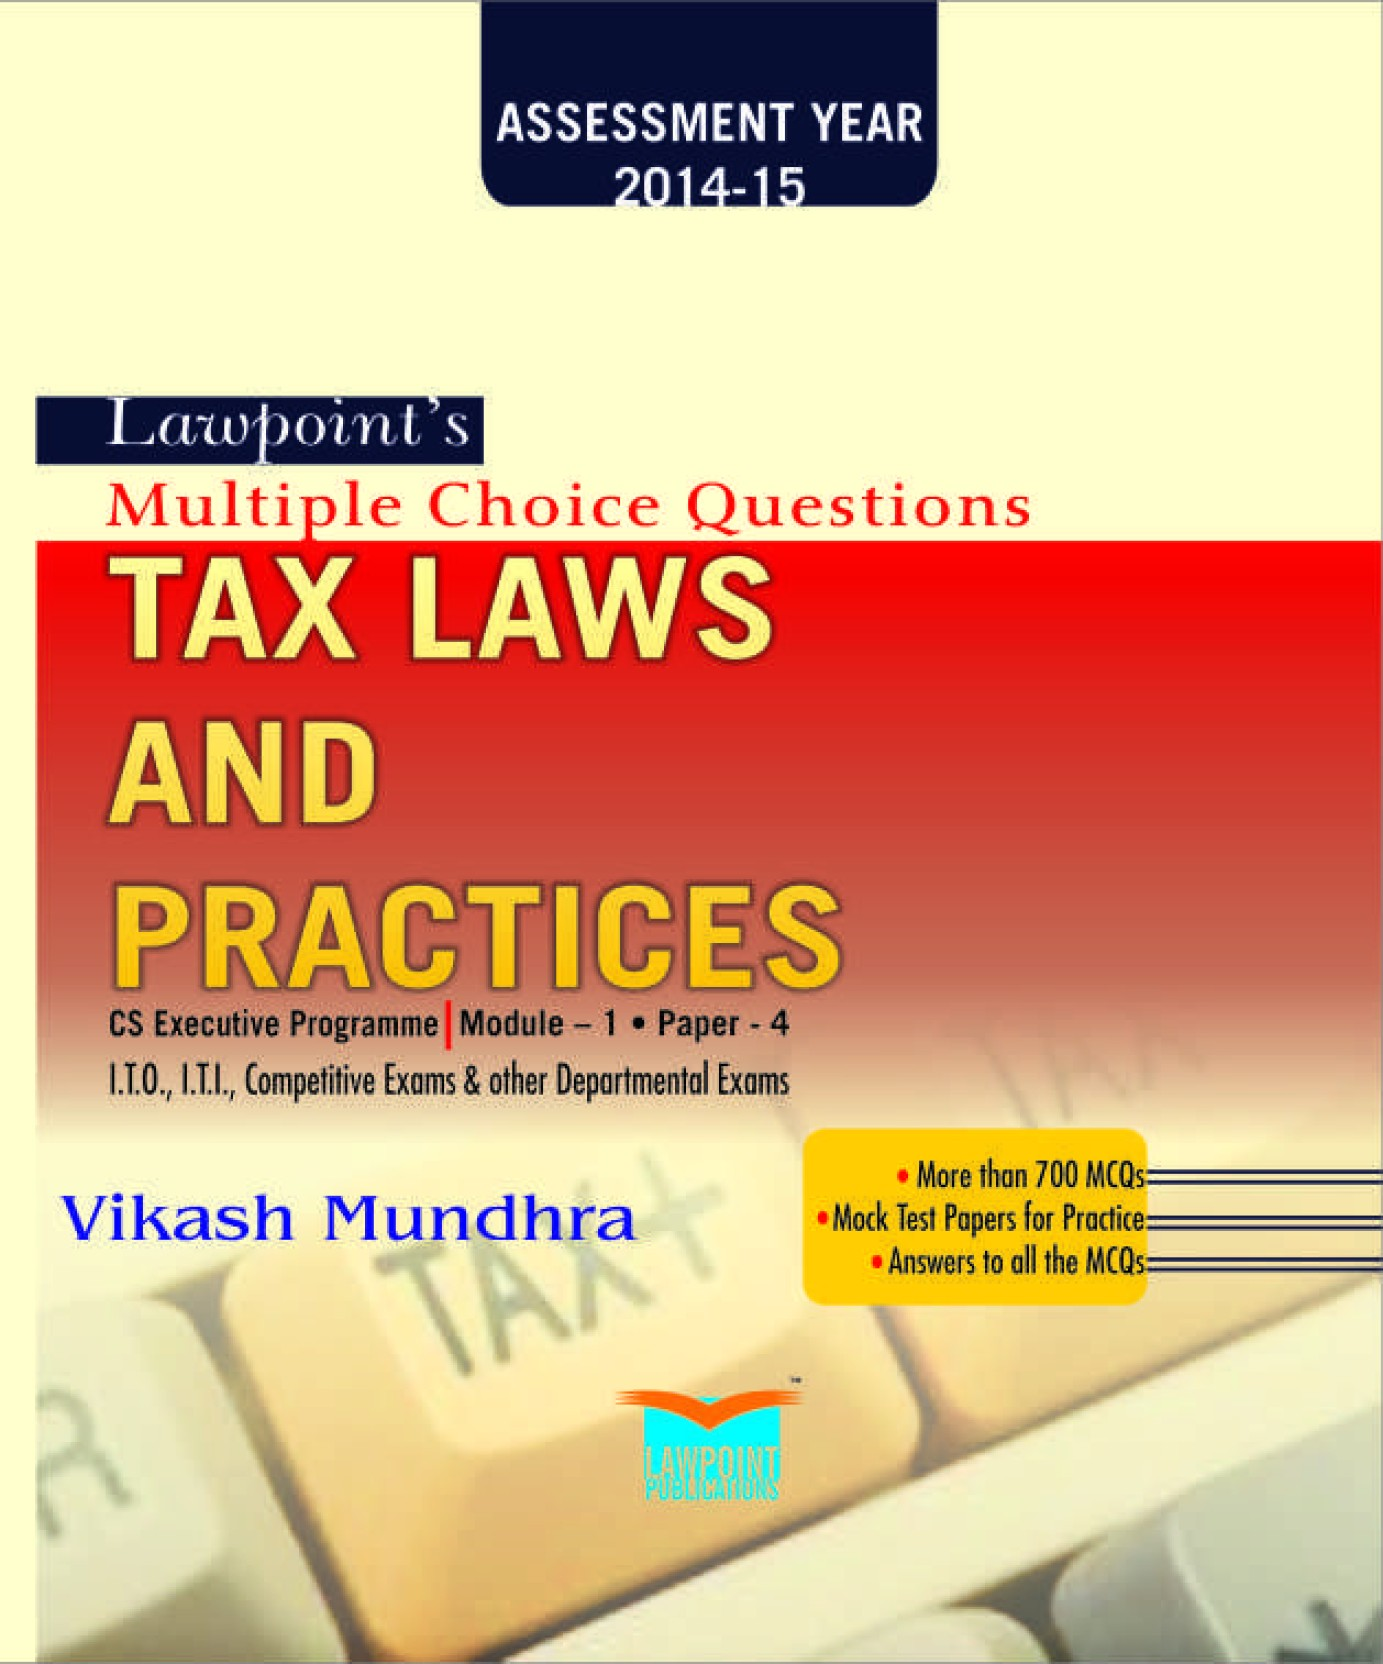 Lawpoint's Multiple Choice Questions on Tax Laws and Practice: Buy